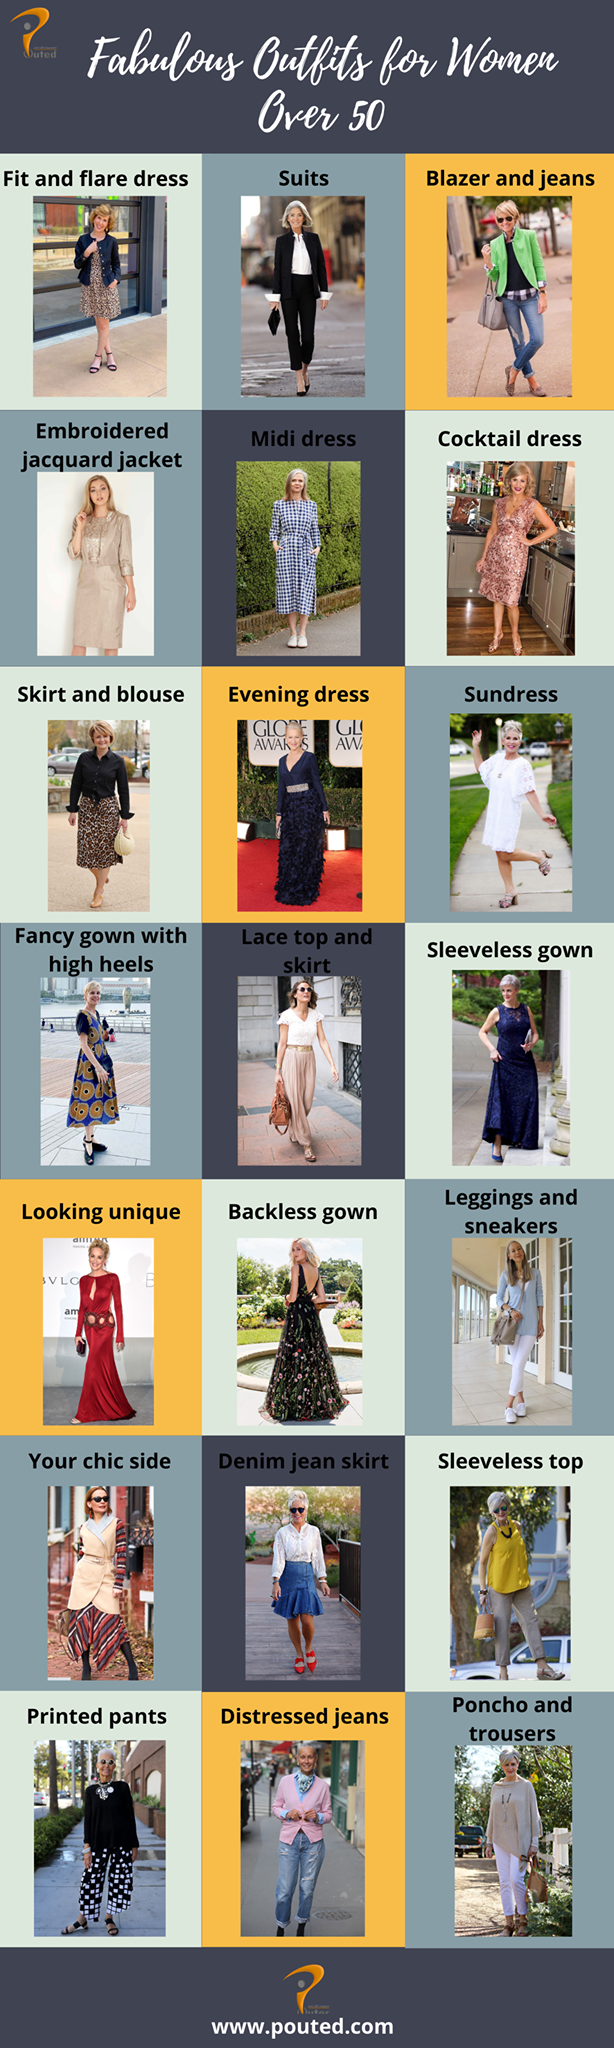 outfits_for_women_over_50 80+ Fabulous Outfits for Women Over 50